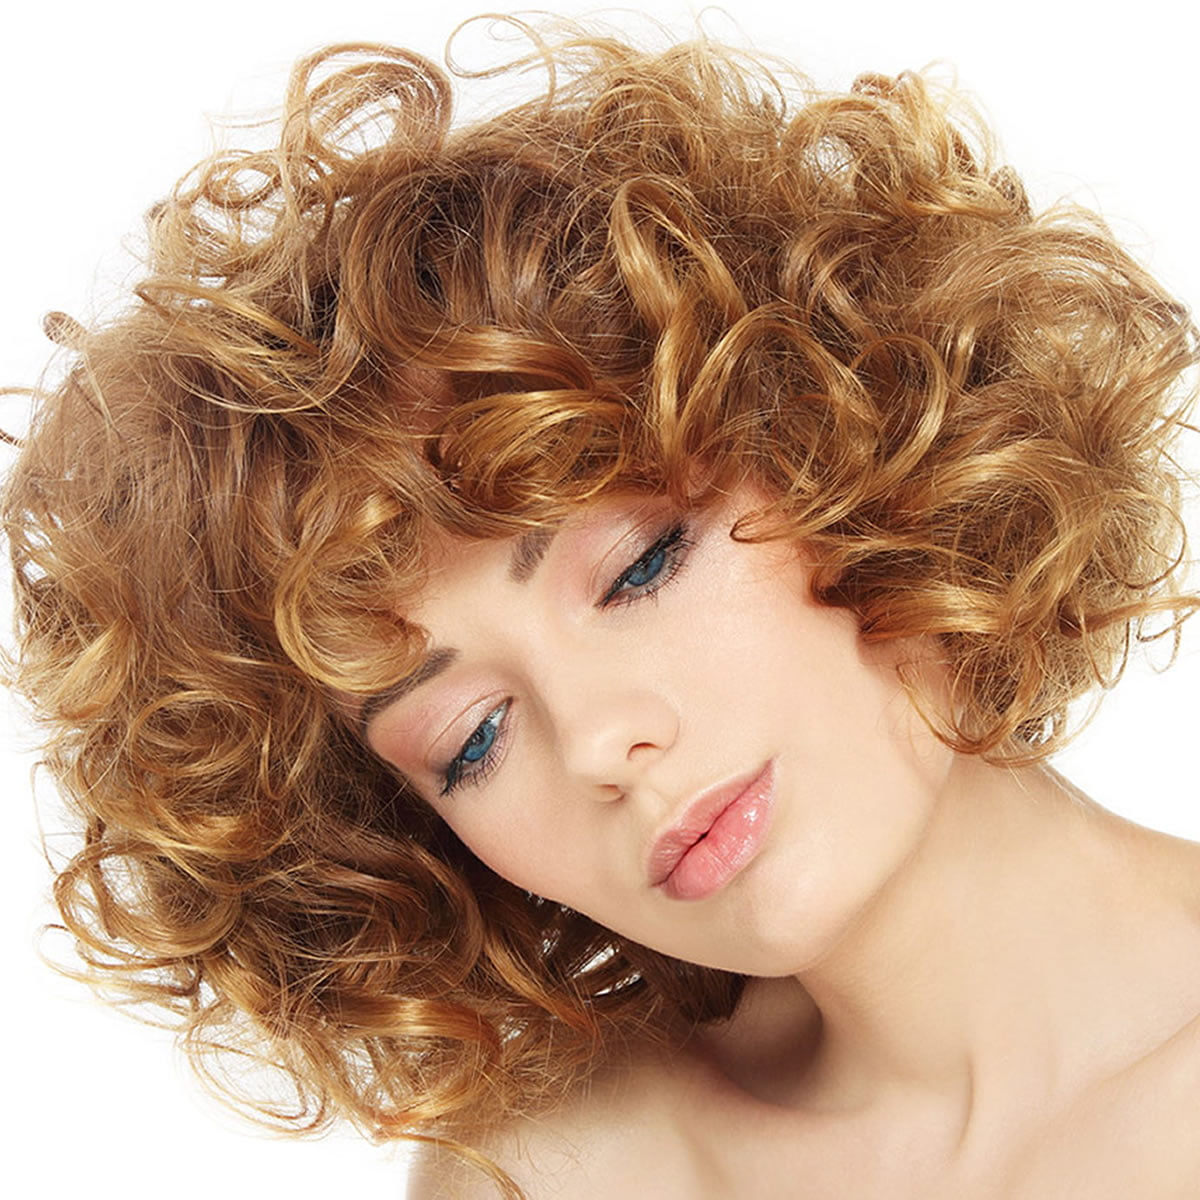 2018 Curly Bob Hairstyles For Women 17 Perfect Short Hair Haircuts